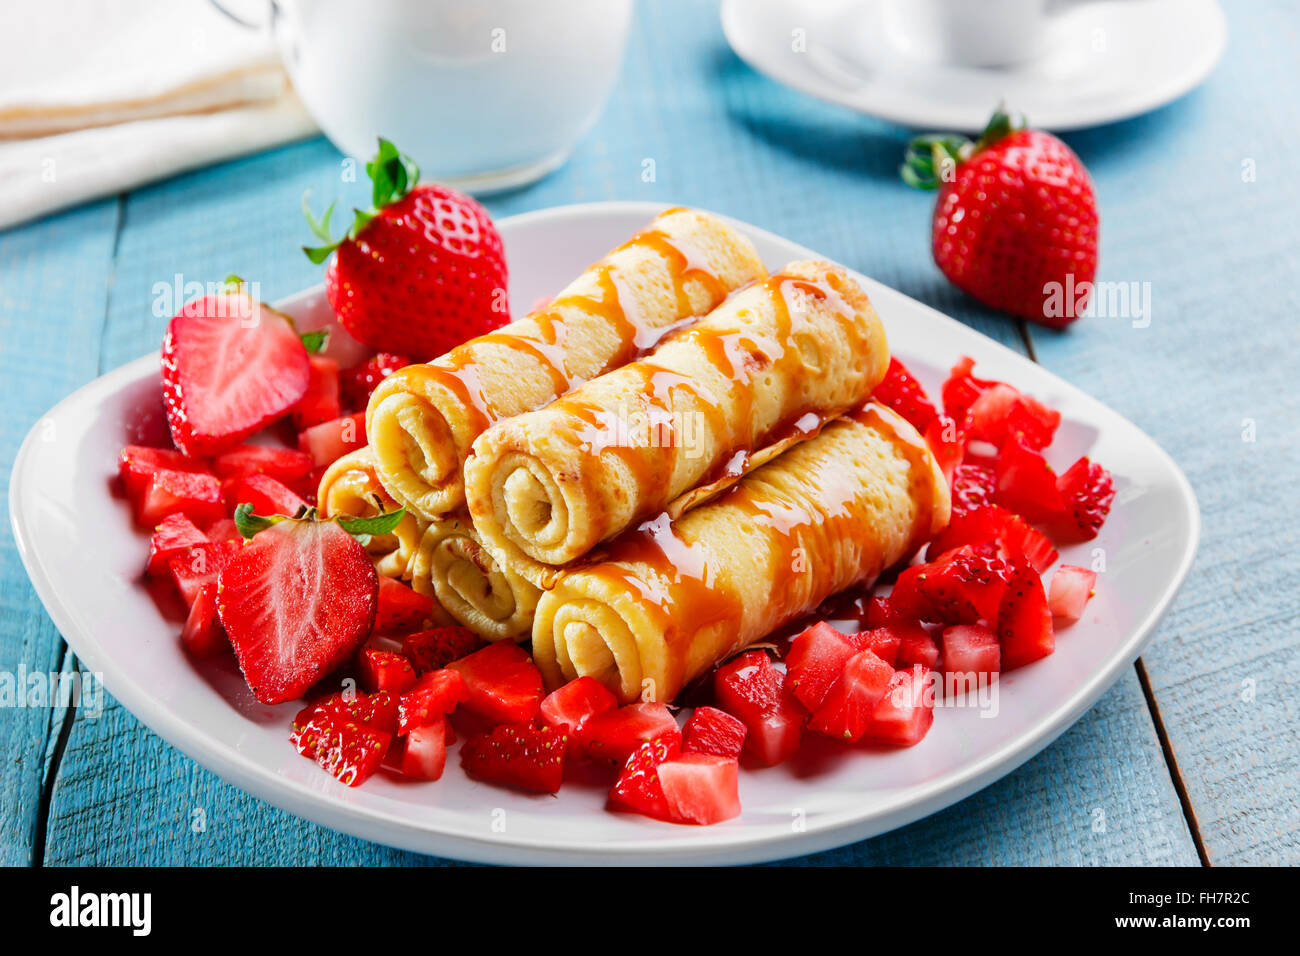 rolled pancakes with strawberries and caramel breakfast - Stock Image